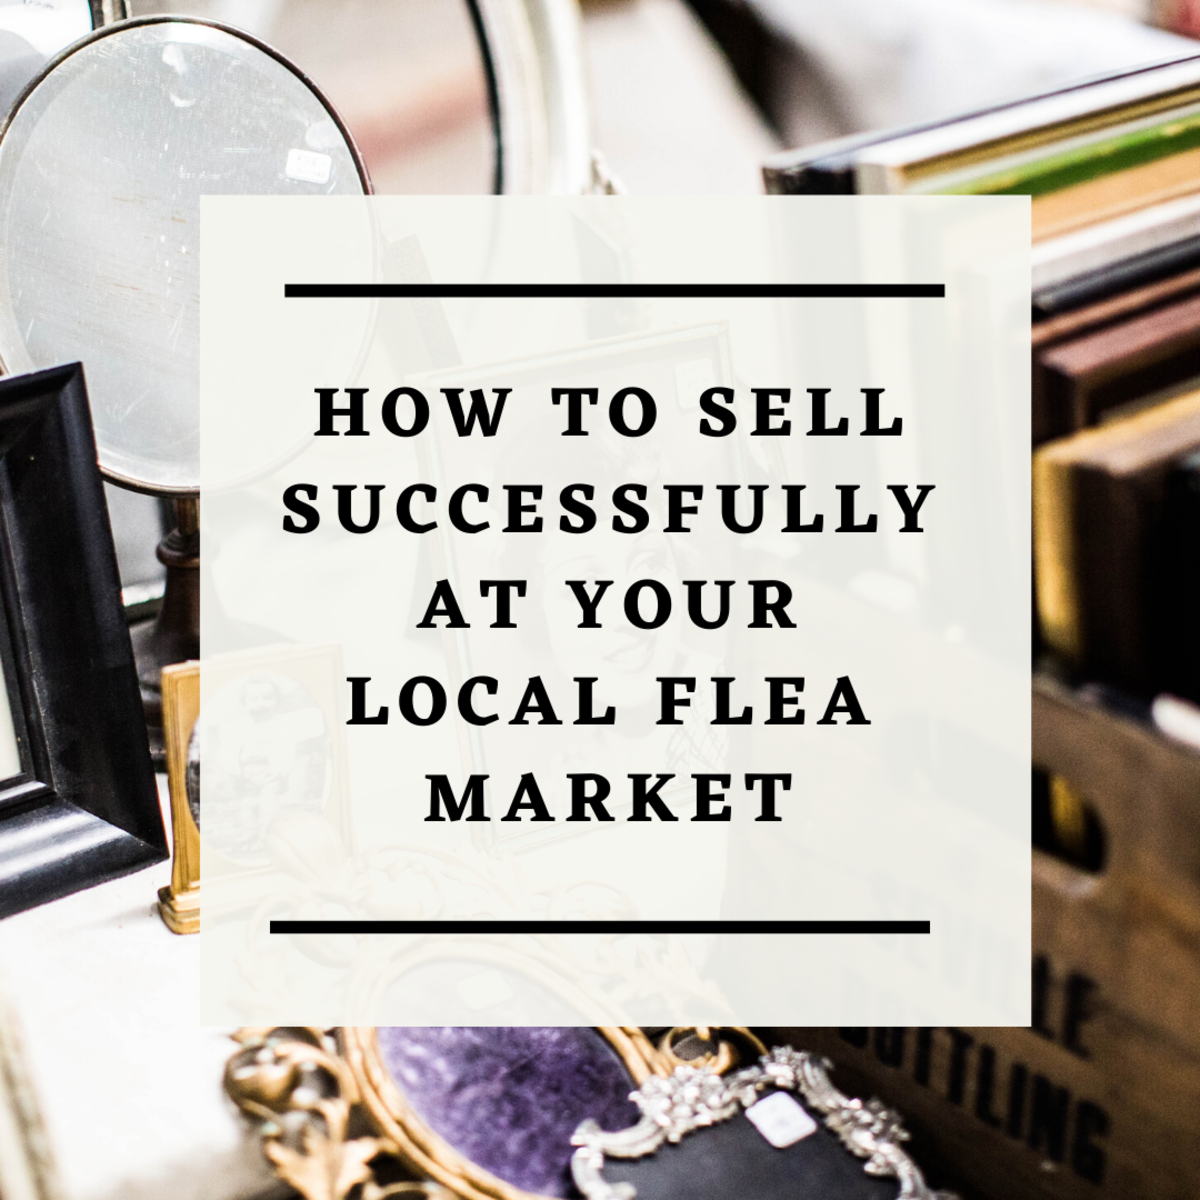 How to Be Successful in Selling at Your Local Flea Market